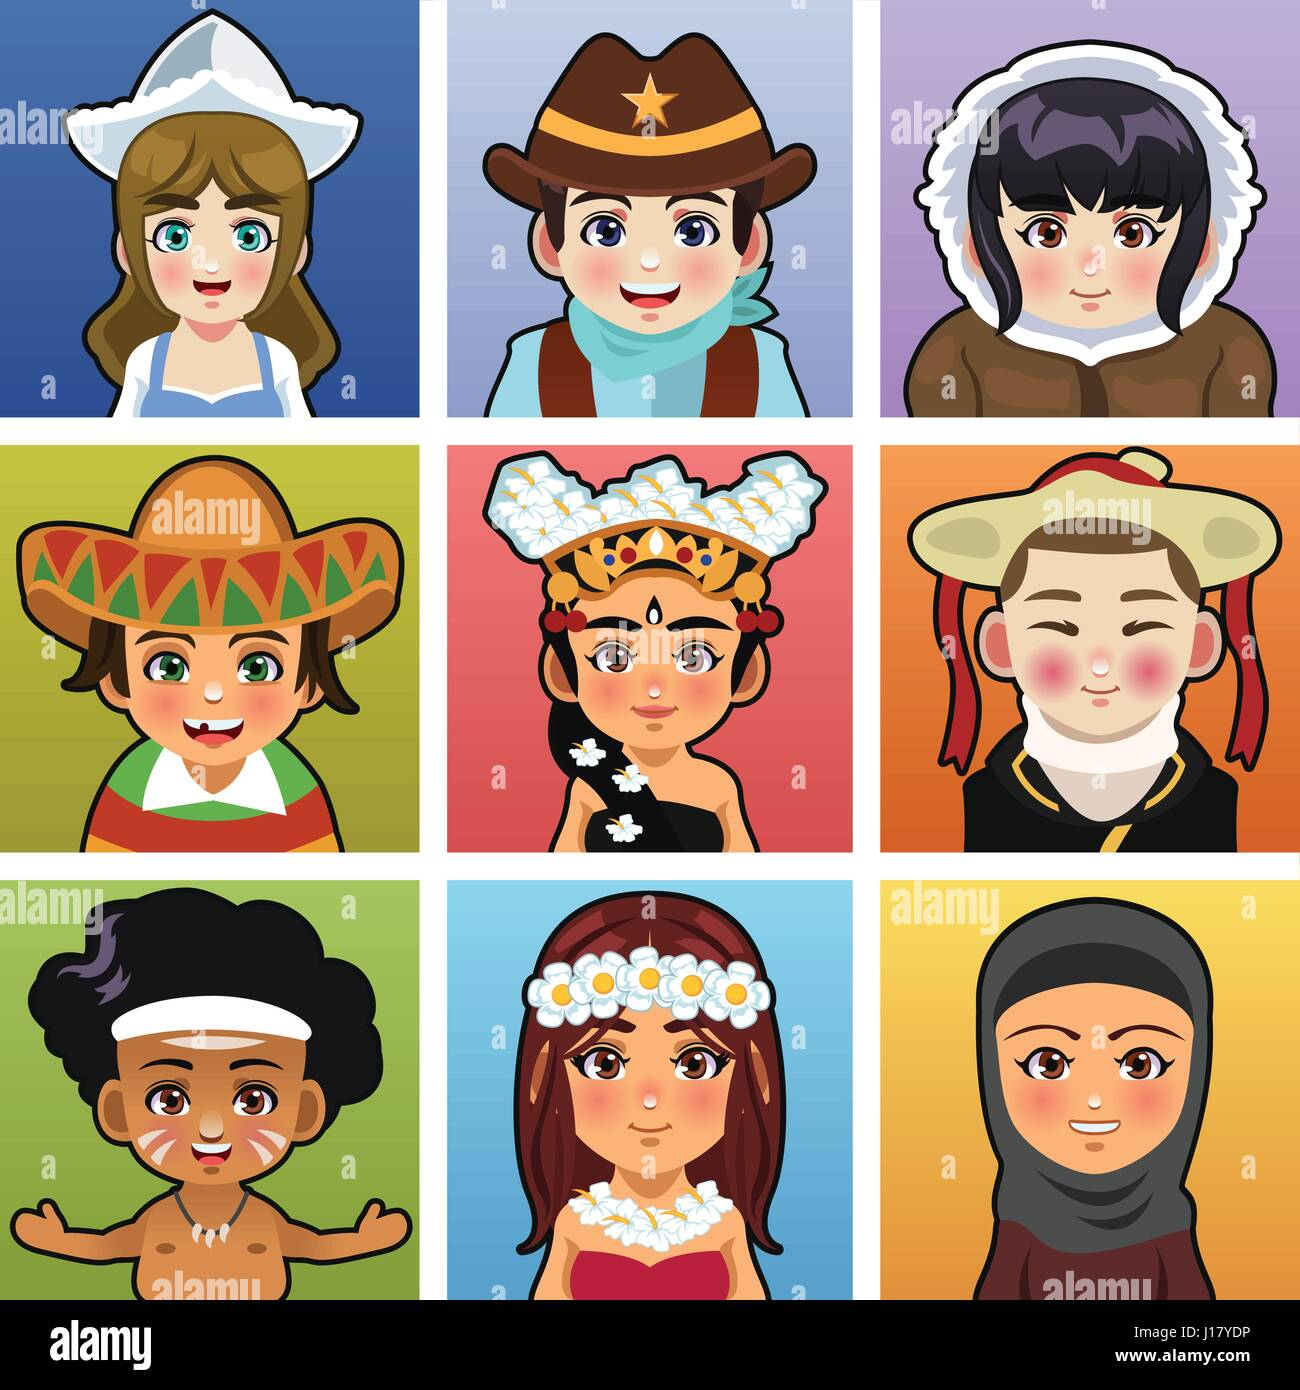 A vector illustration of children from different parts of the world wearing traditional clothing - Stock Vector